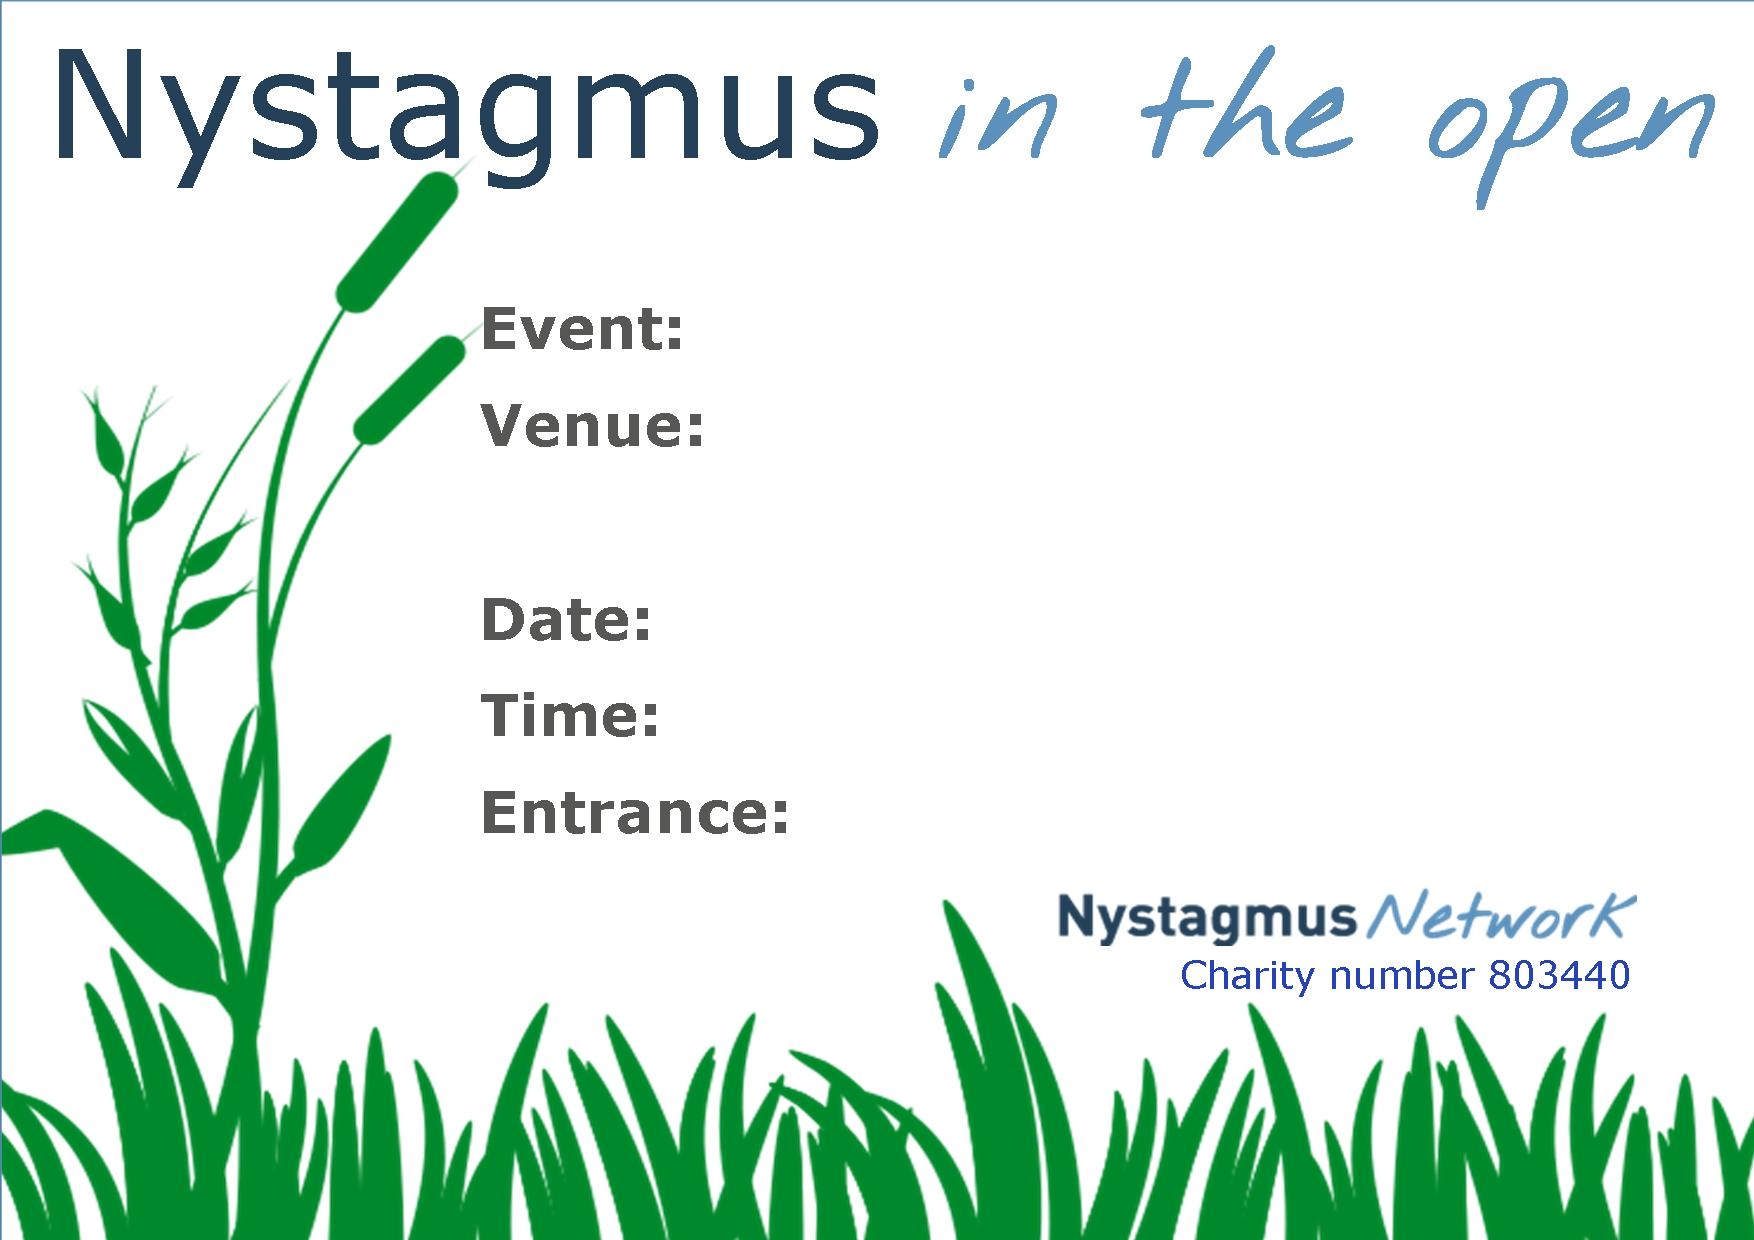 nystagmus in the open - JustGiving